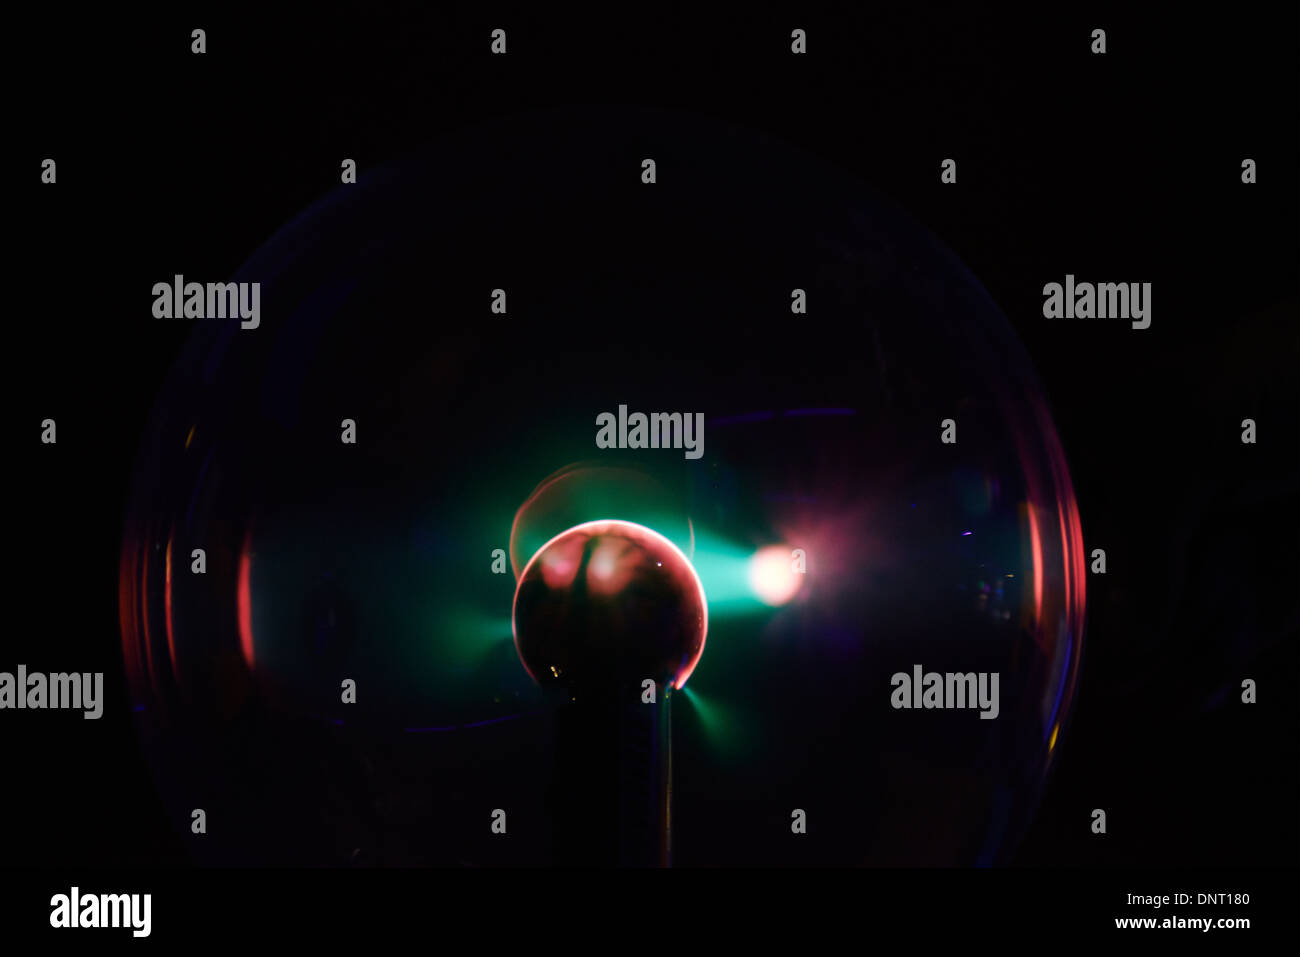 Electricity Arcs from a Plasma Ball - Globe - Lamp when finger touch it - Stock Image